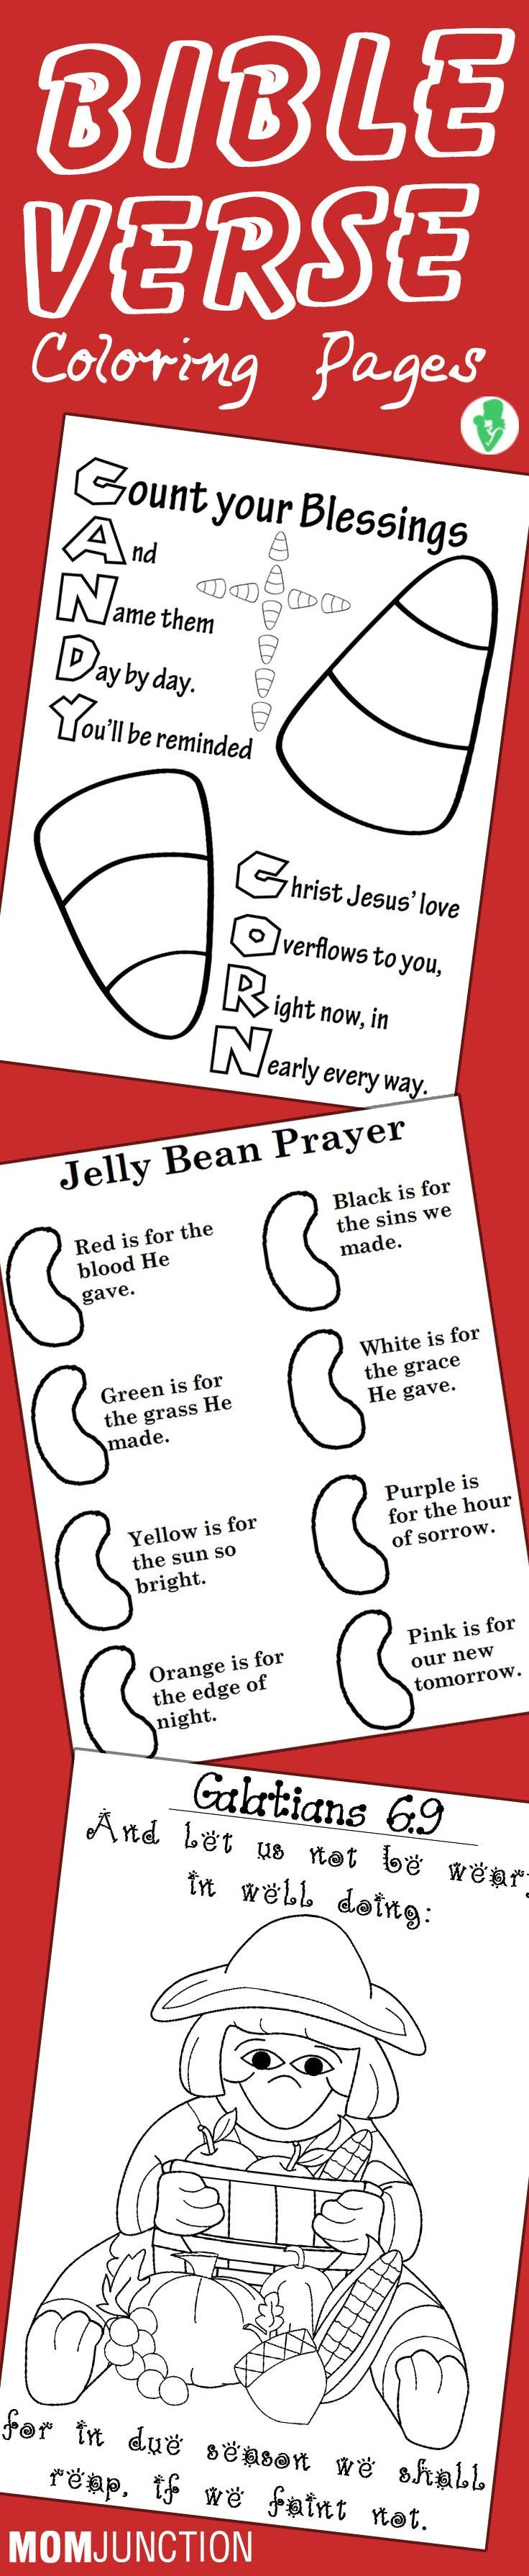 Thanksgiving coloring pages with bible verses - Top 10 Bible Verse Coloring Pages For Your Toddler